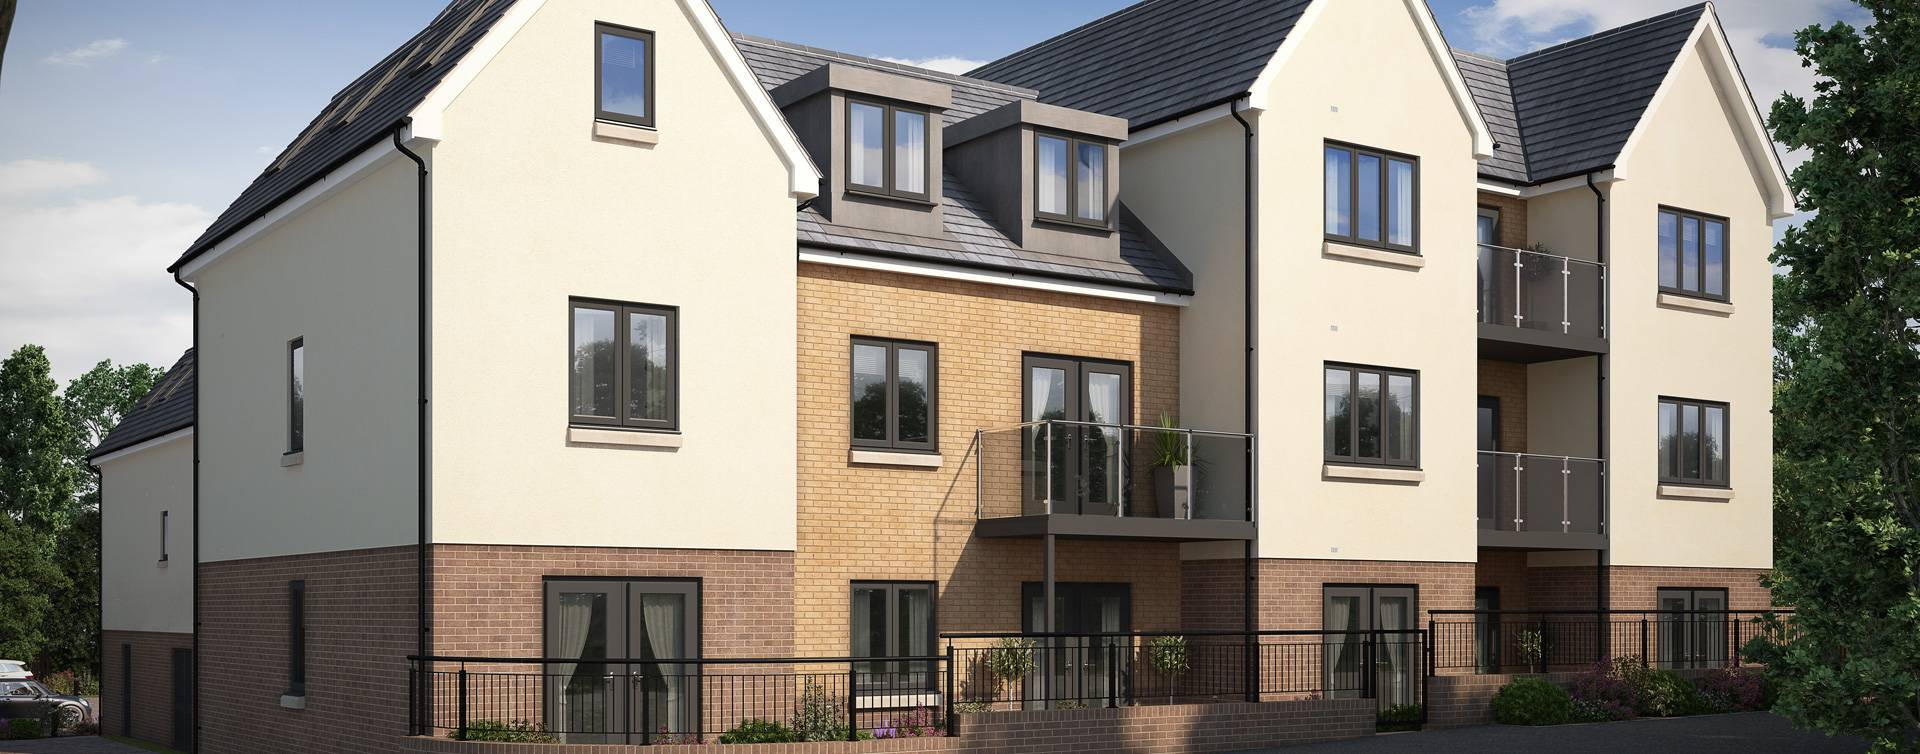 Linden House Luxury Apartments Epping Essex Chelsteen Homes